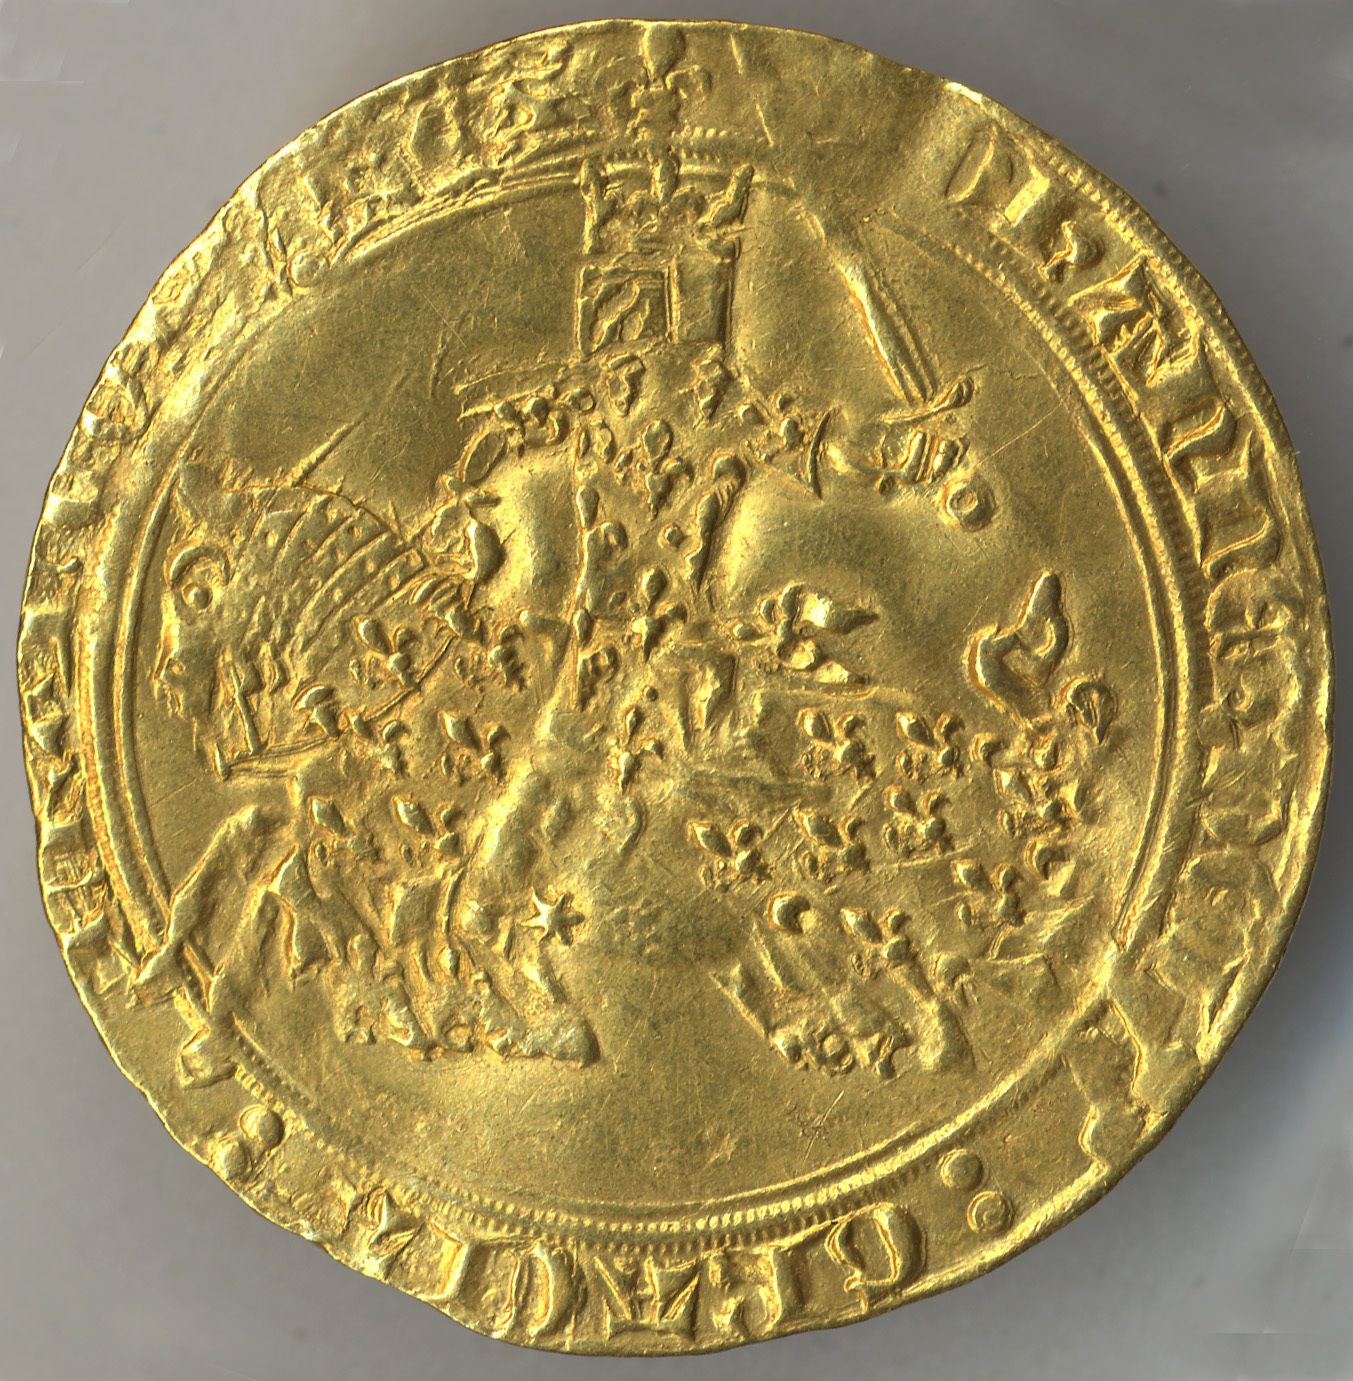 Franc à Cheval of John the Good Date: ca. 1350–64 Geography: Made in Poitiers, France Culture: French Medium: Gold